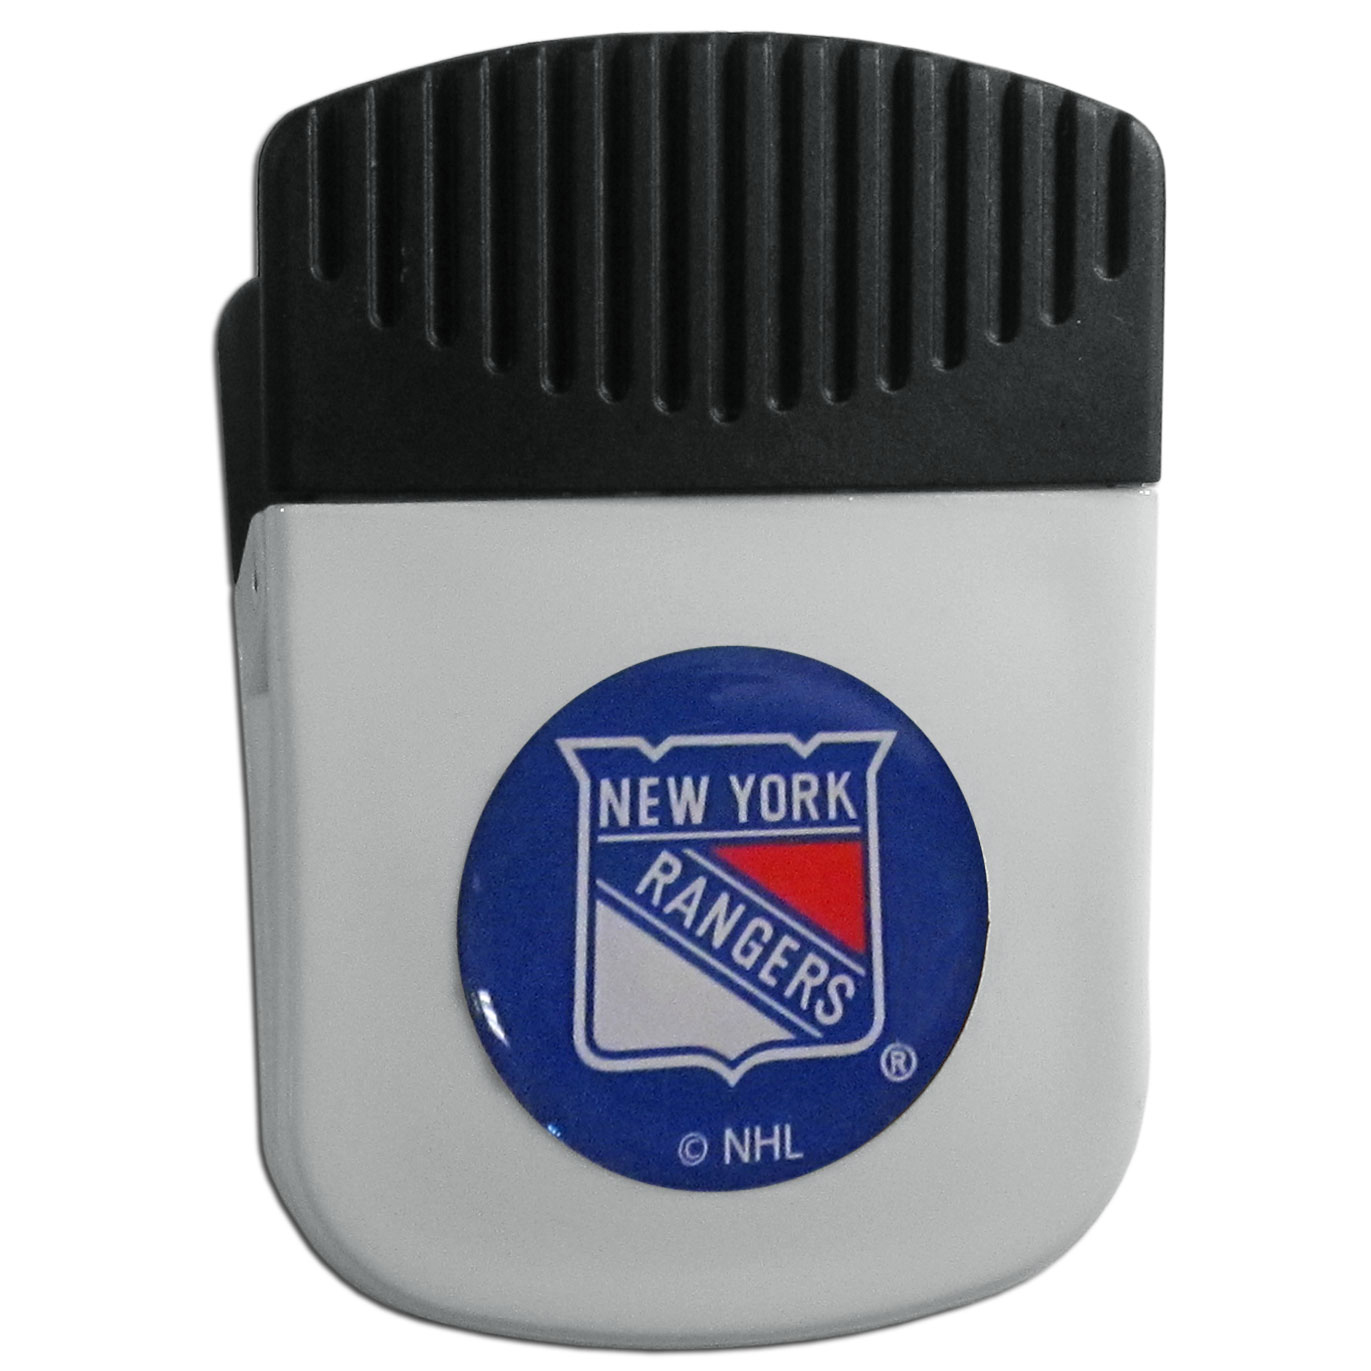 New York Rangers® Chip Clip Magnet - Use this attractive clip magnet to hold memos, photos or appointment cards on the fridge or take it down keep use it to clip bags shut. The magnet features a domed New York Rangers® logo.